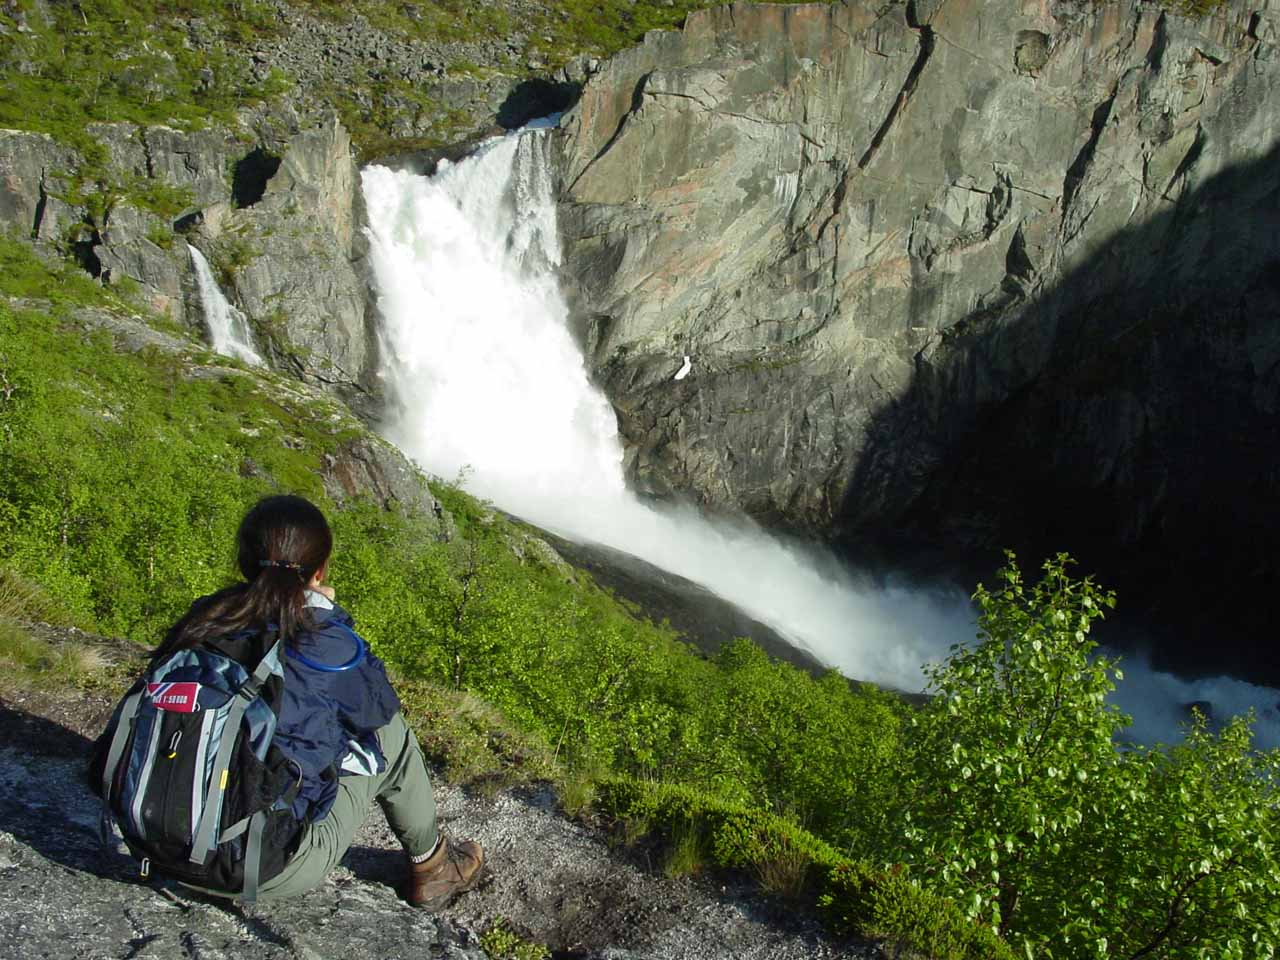 Sometimes we had to go on an excursion where its success wasn't a sure thing like this hike to Valursfossen in Norway, where we took advantage of the long days to get here at 9pm!